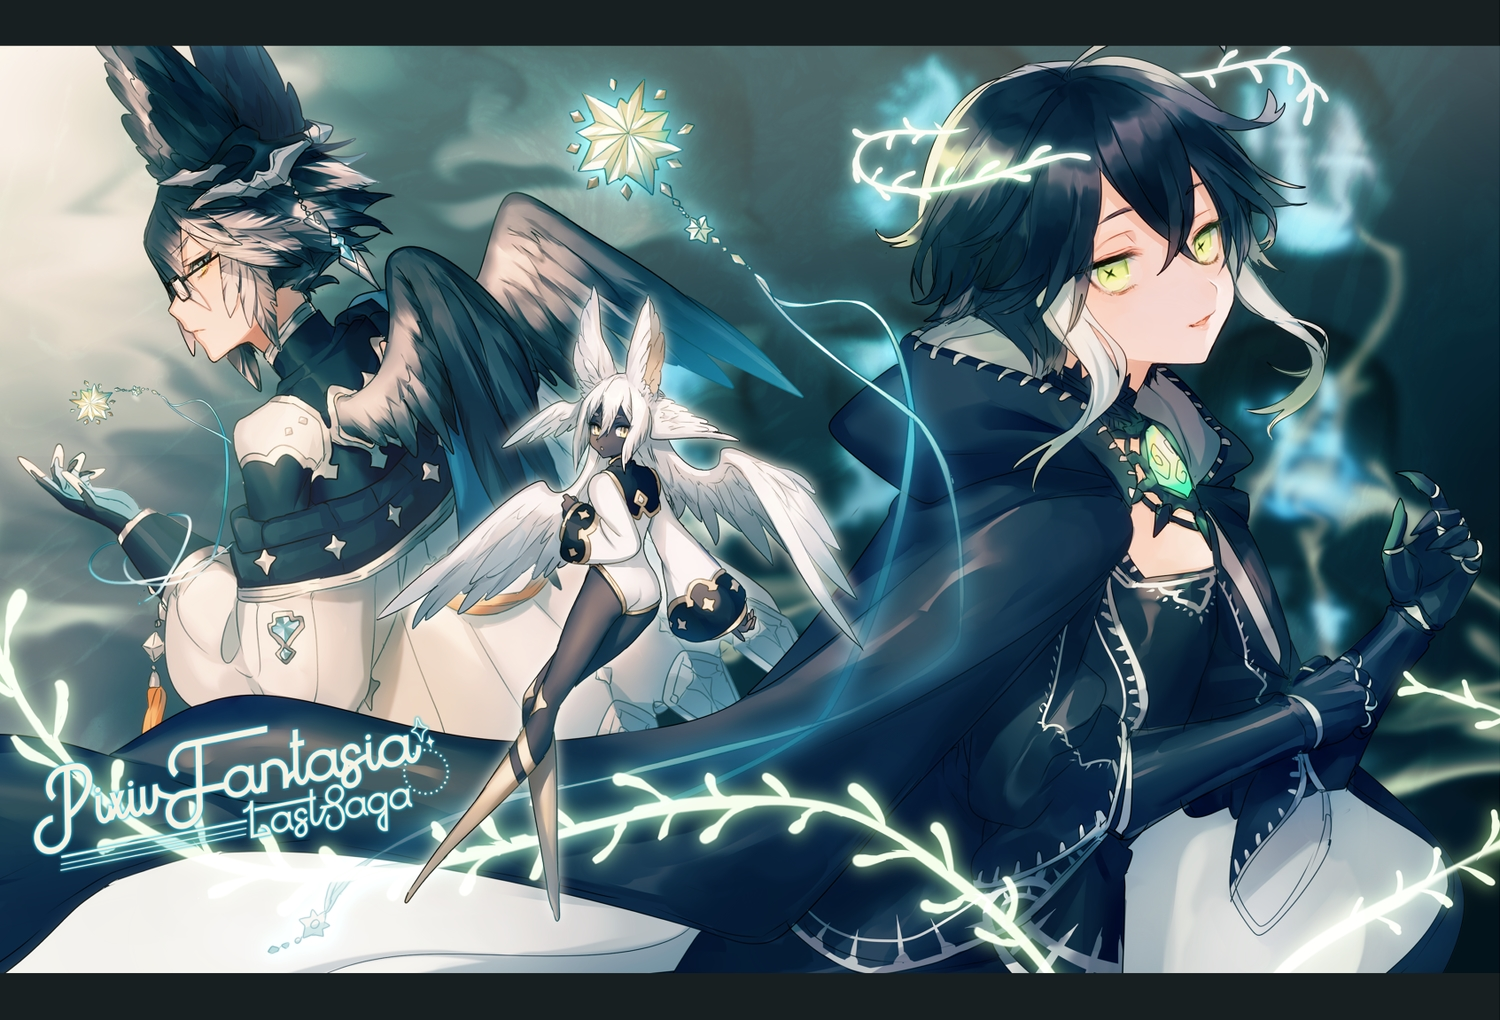 asuda black_hair dark_skin elbow_gloves fairy feathers flat_chest glasses gloves green_eyes long_hair original pixiv_fantasia wings